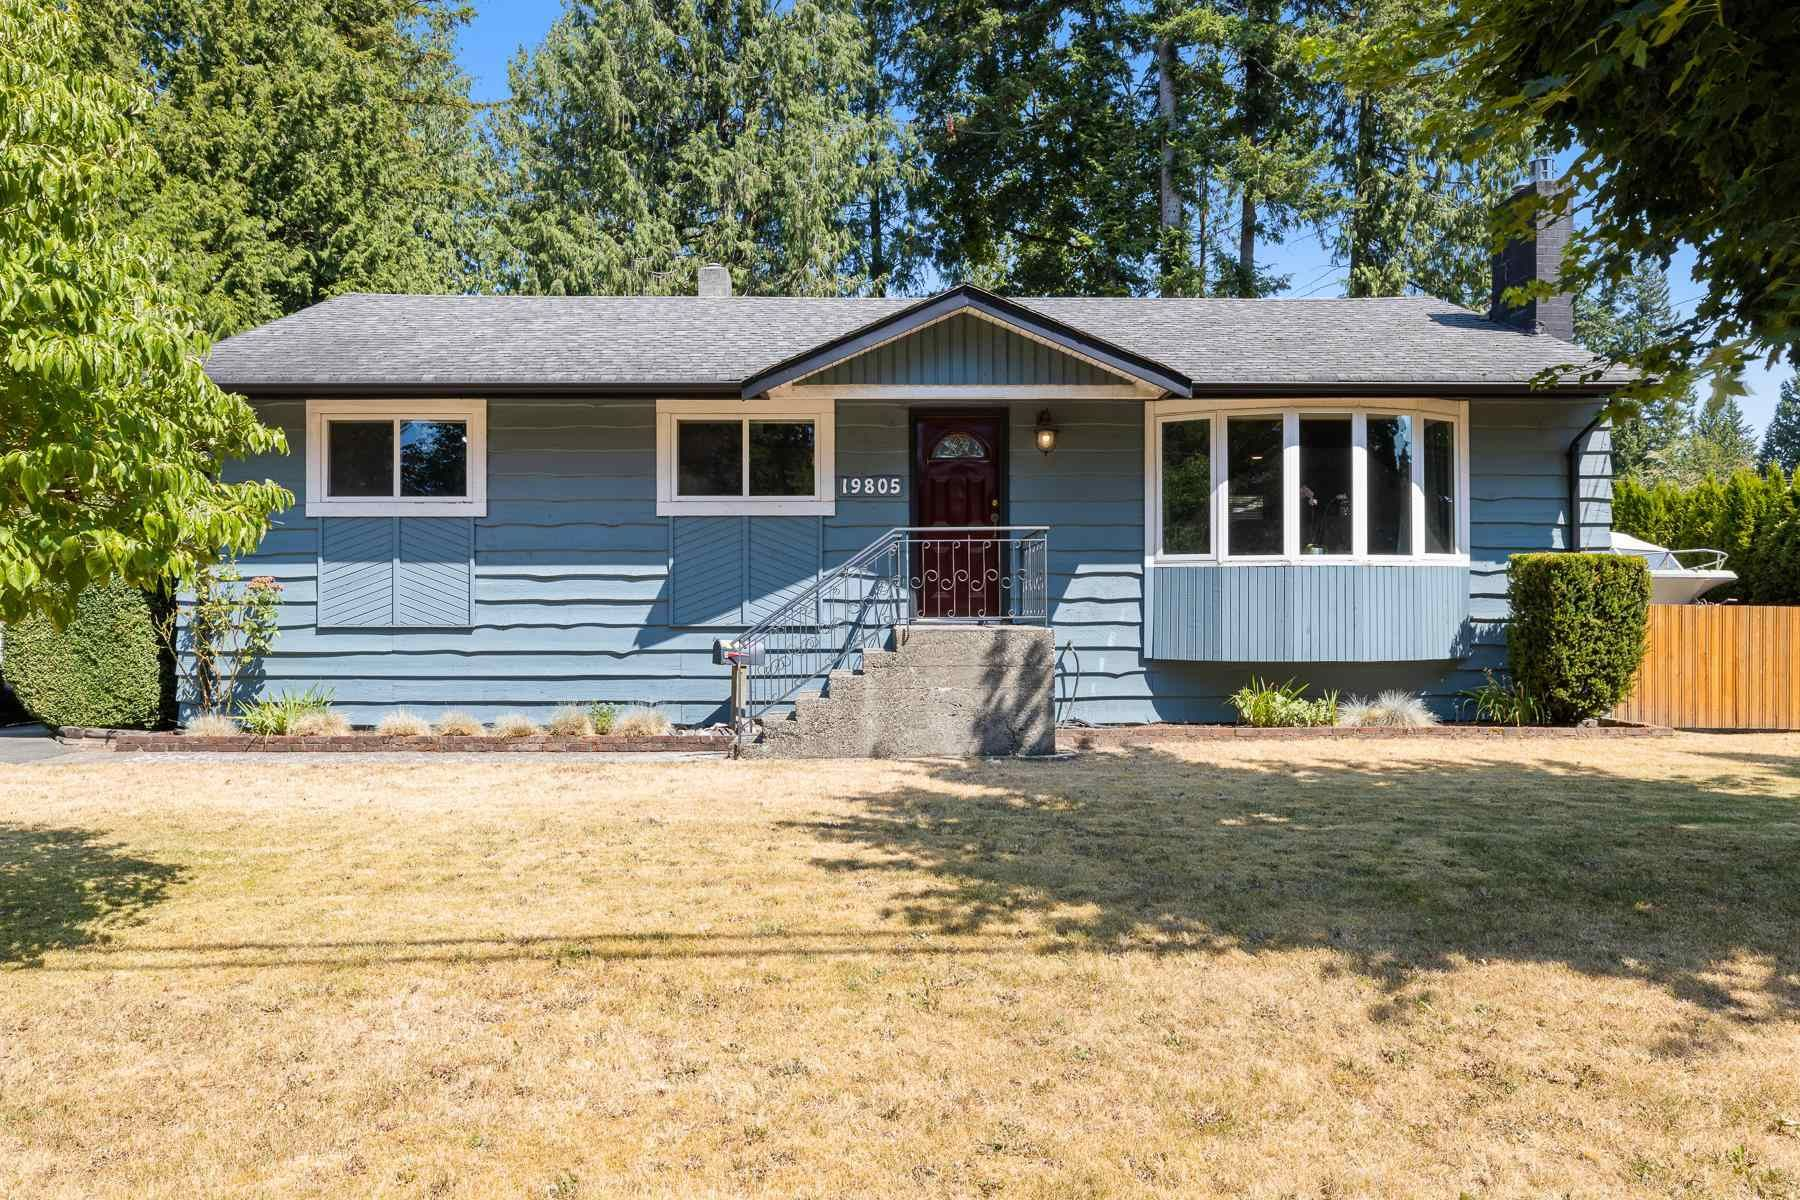 Main Photo: 19805 38 Avenue in Langley: Brookswood Langley House for sale : MLS®# R2603275